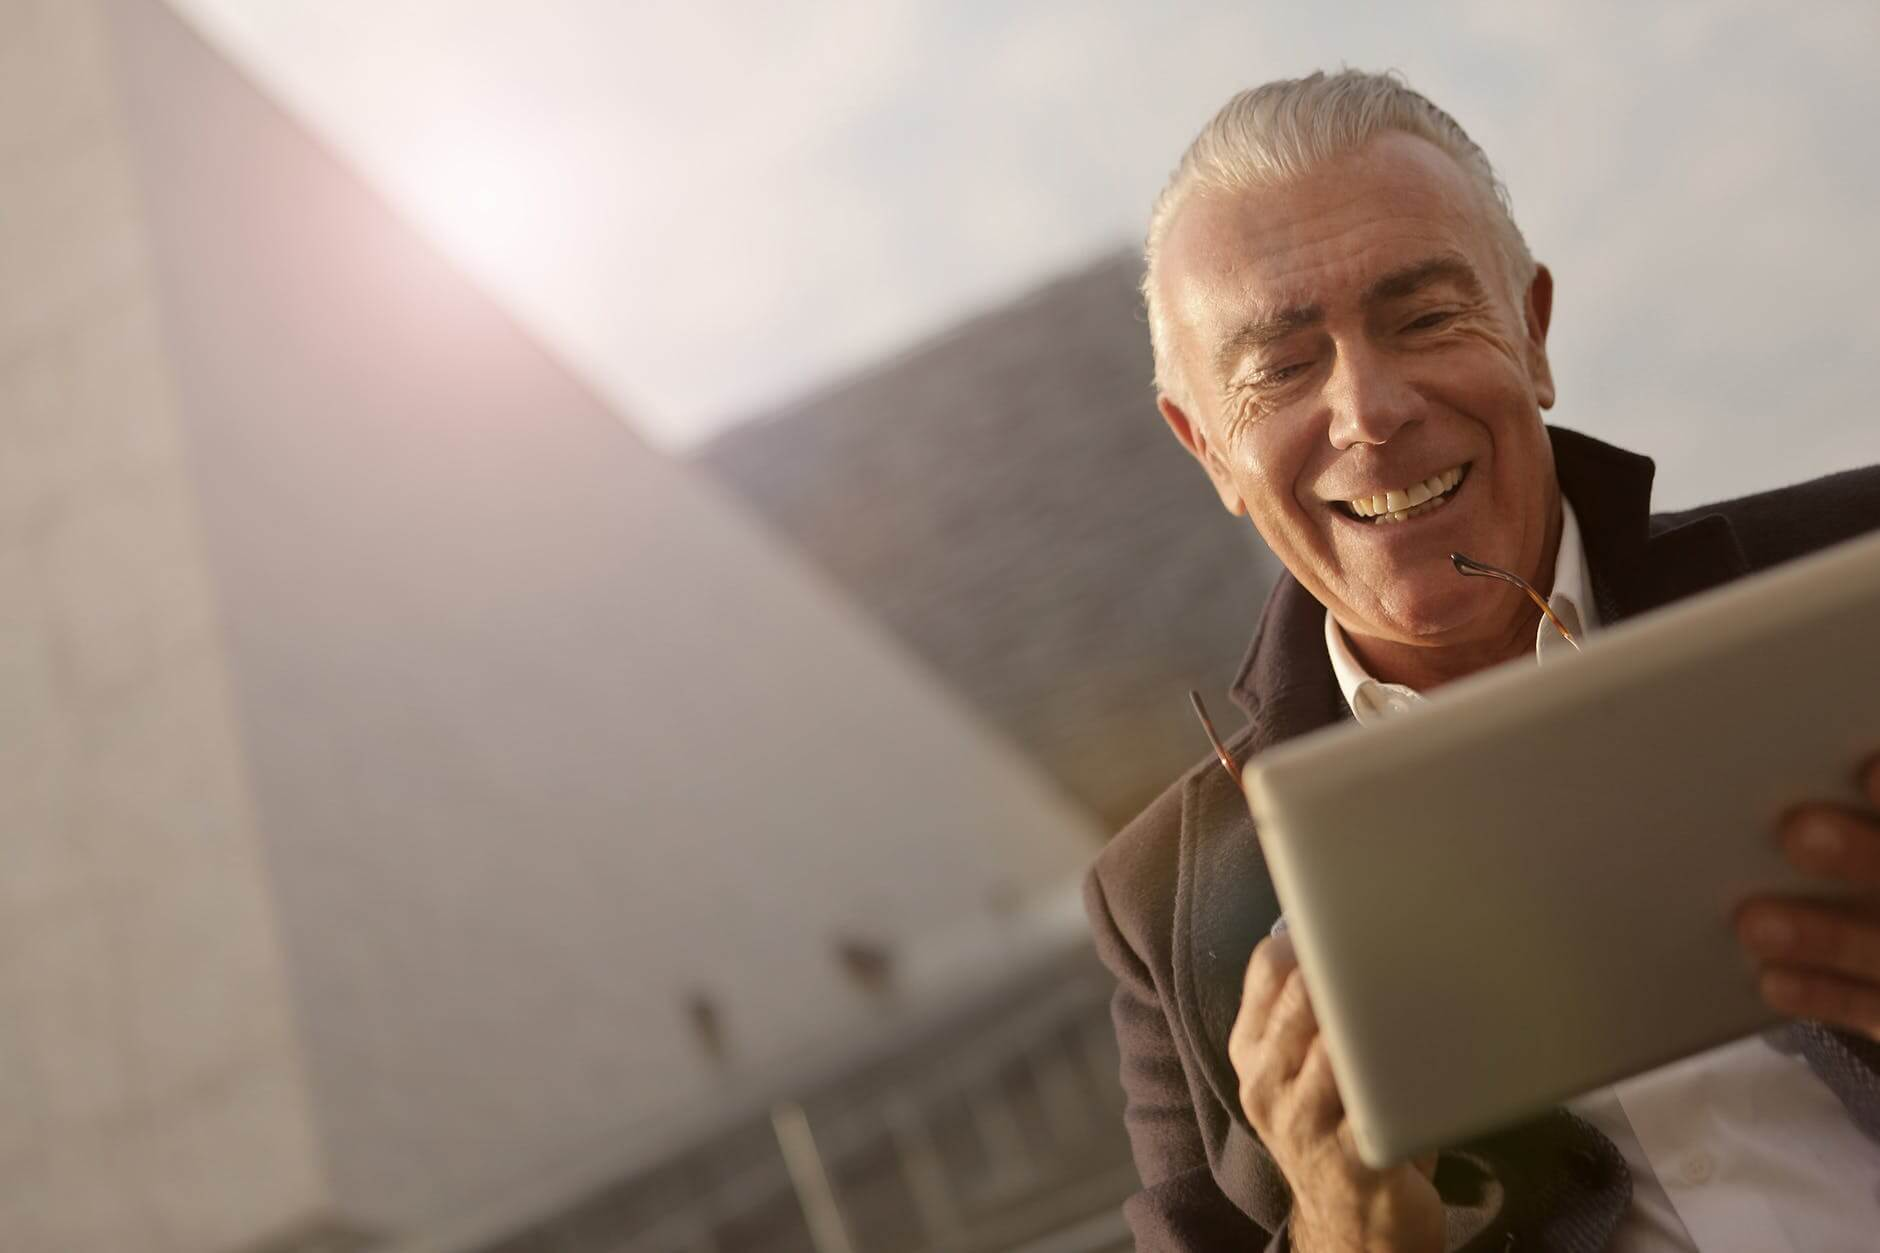 An older man smiling while watching tv on his tablet